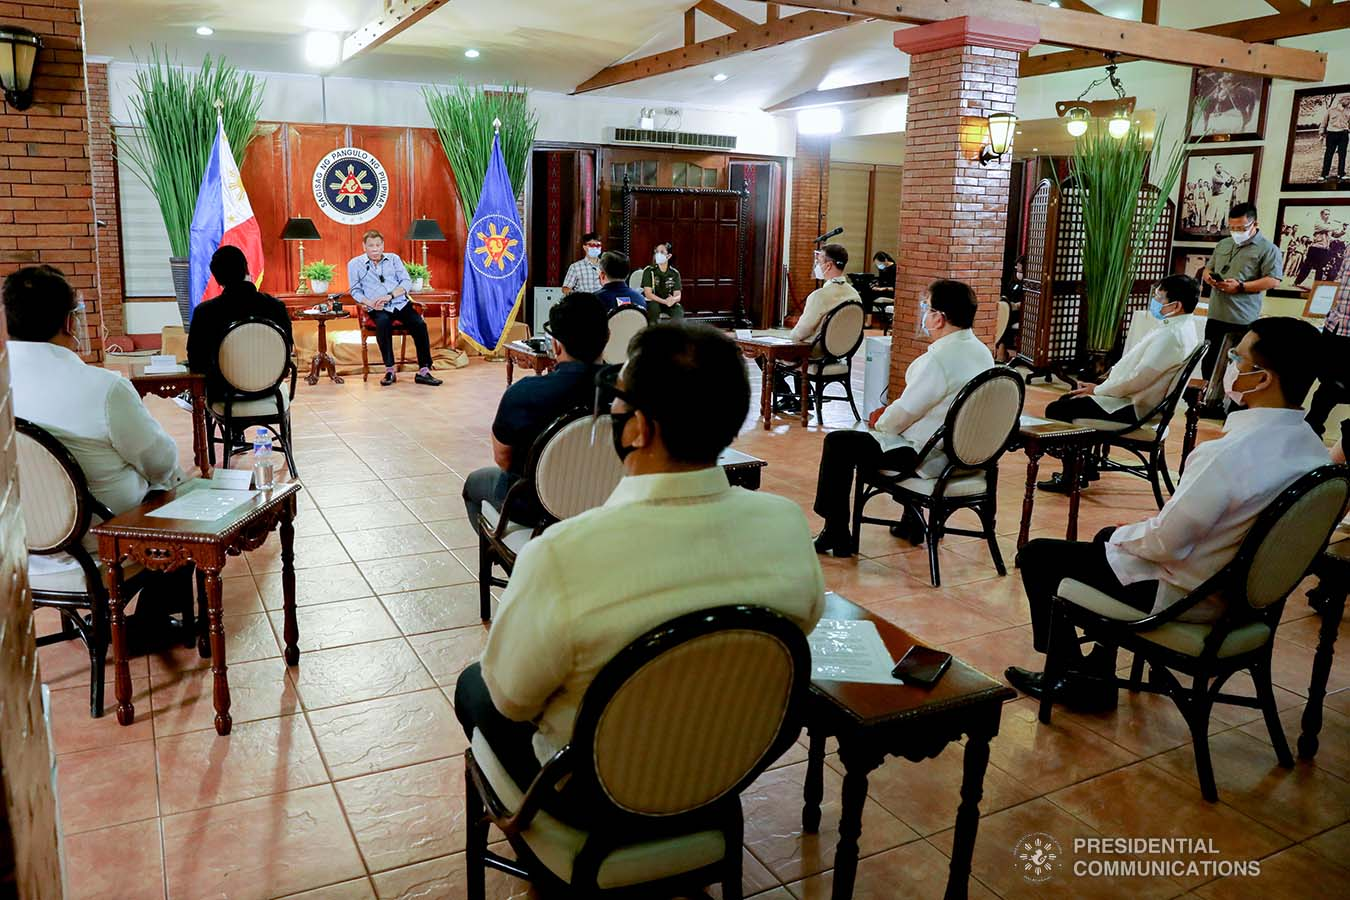 President Rodrigo Roa Duterte speaks with House Speaker Alan Peter Cayetano, Marinduque Representative Lord Allan Jay Velasco and several members of the House of Representatives in a meeting at the Malacañang Golf (MALAGO) Clubhouse in Malacañang Park, Manila on September 29, 2020. The President called on Cayetano and Velasco, who were accompanied by their respective partymates and supporters in the Lower House, to discuss matters affecting Congress lately. ROBINSON NIÑAL/PRESIDENTIAL PHOTO